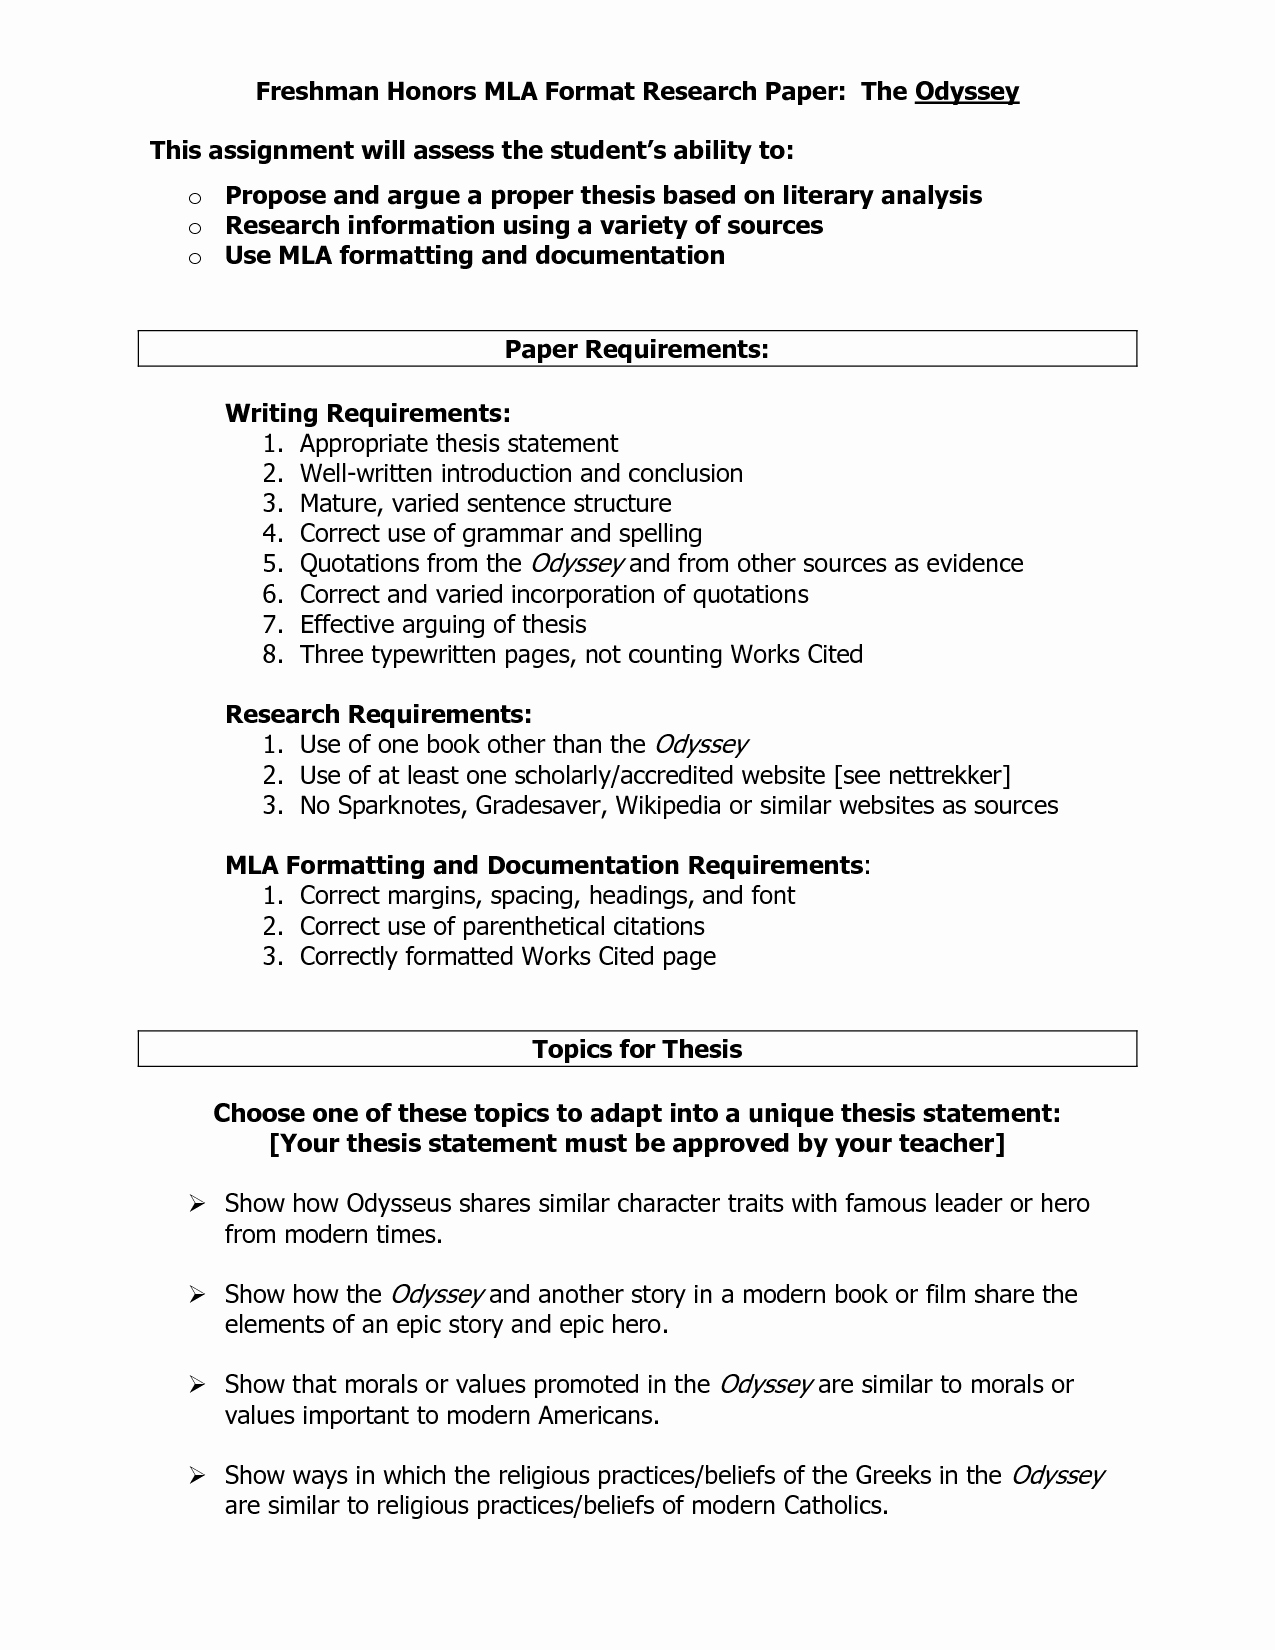 Mla format Paper Template Unique History Essay and Research Papers Cool Essay